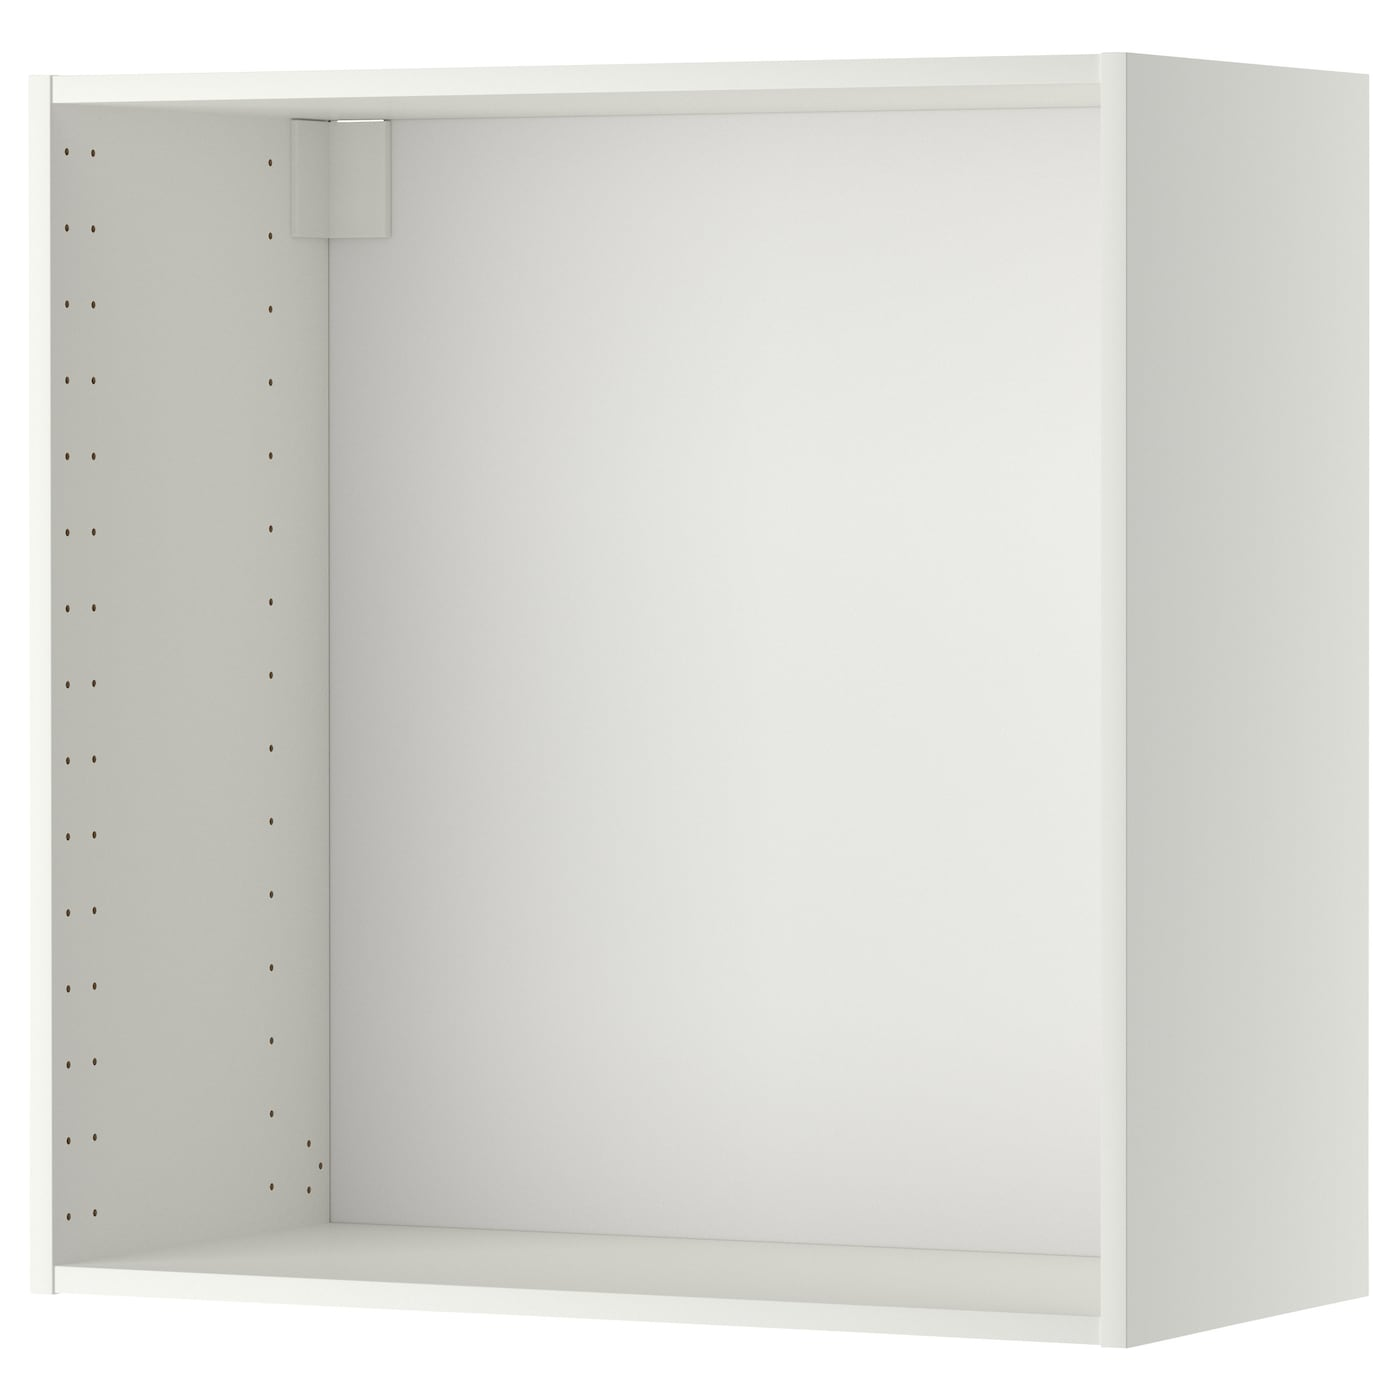 Metod Wall Cabinet Frame White 80 X 37 X 80 Cm Ikea